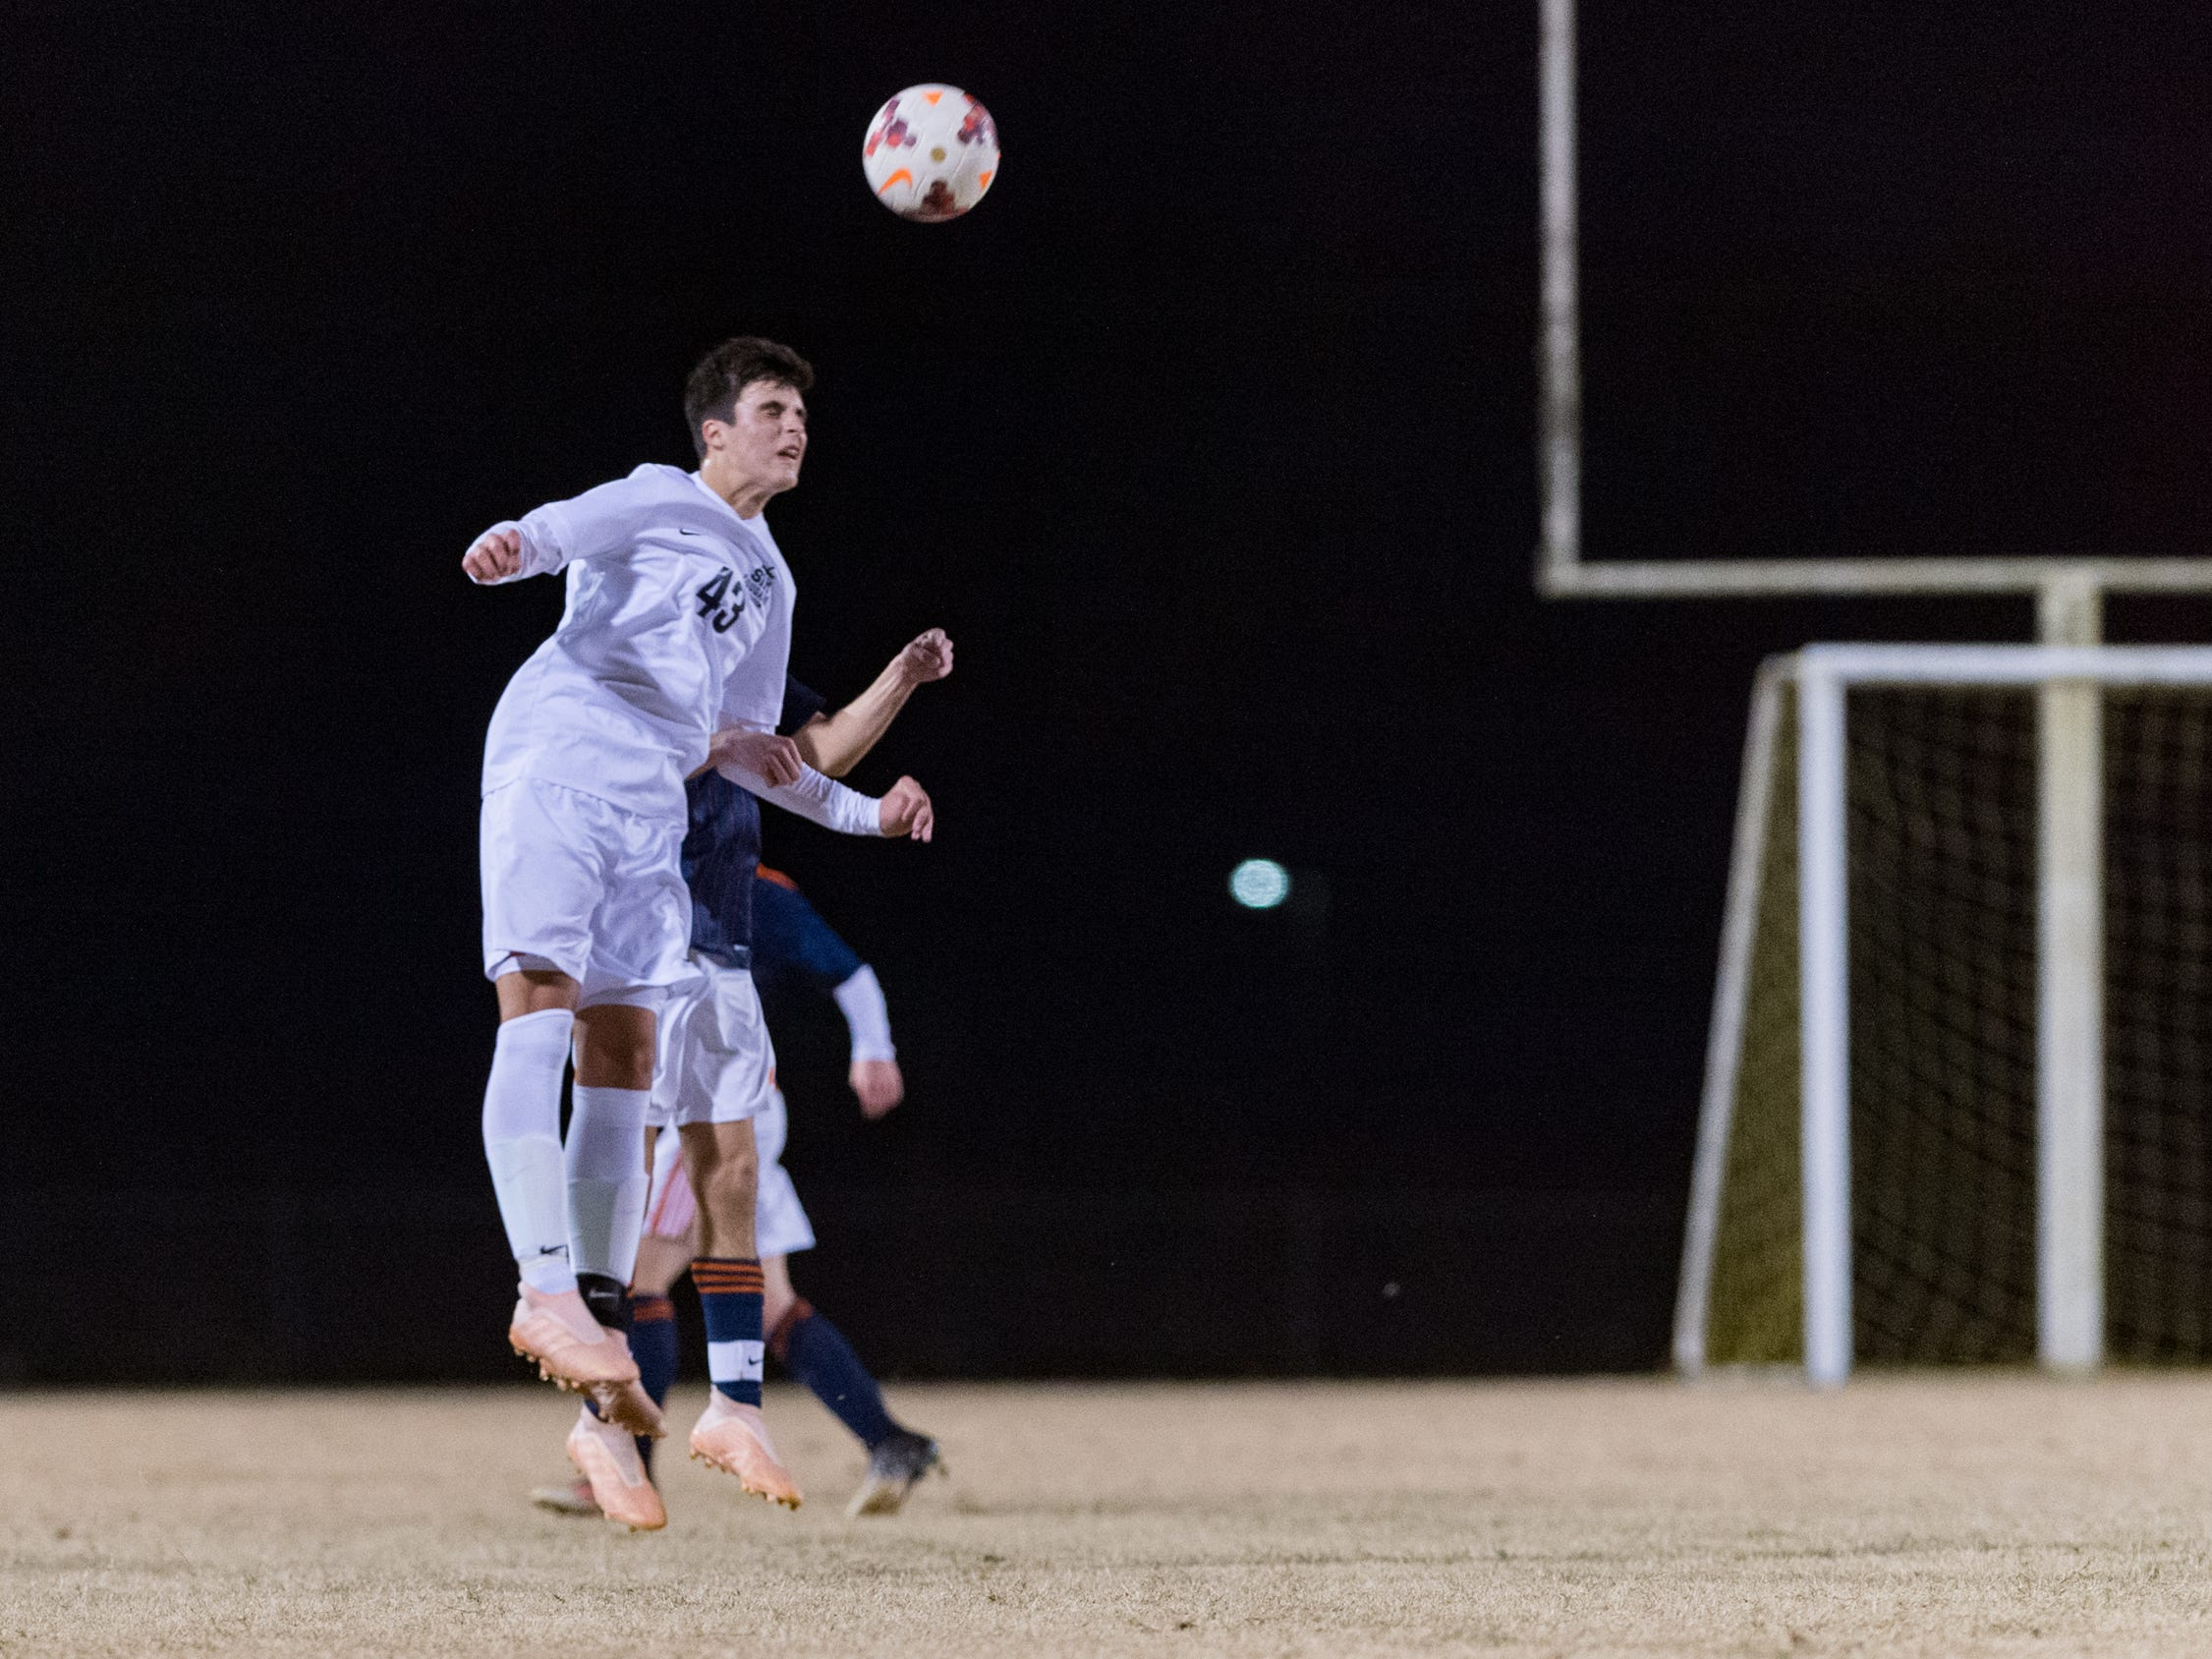 Townes Wallace header as Beau Chene takes on STM in Boys soccer. Tuesday, Jan. 22, 2019.